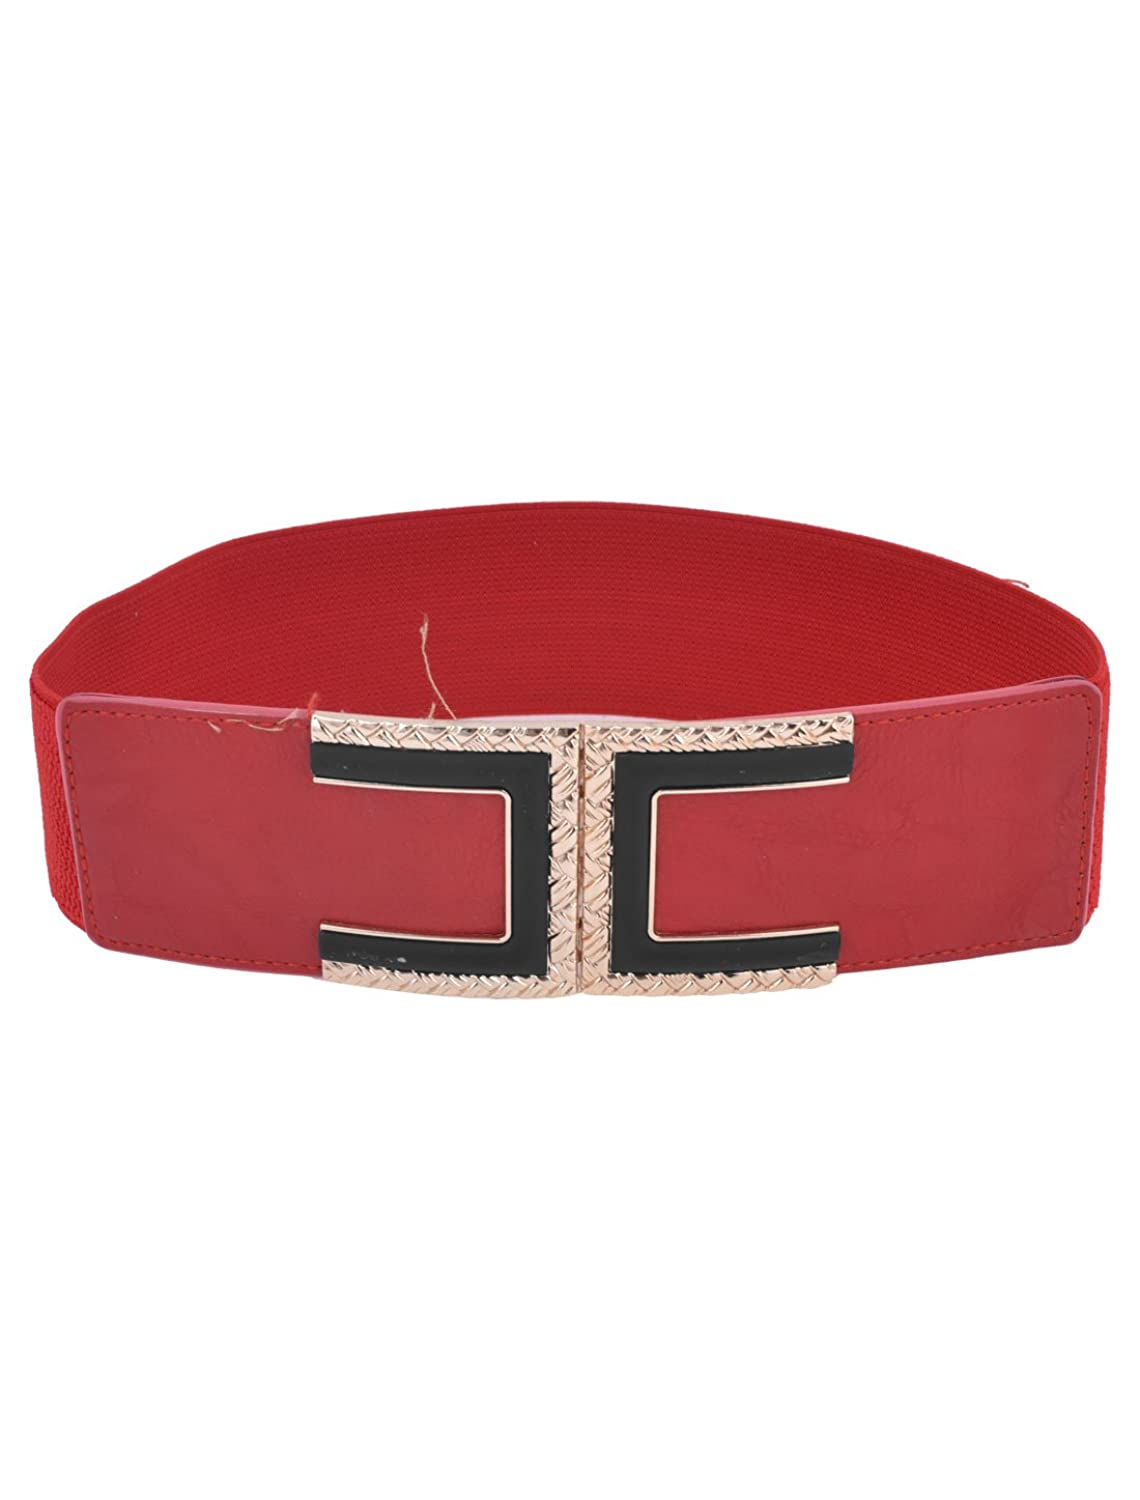 Braided Metal Decor Interlock Buckle 6cm Width Elastic Waist Belt